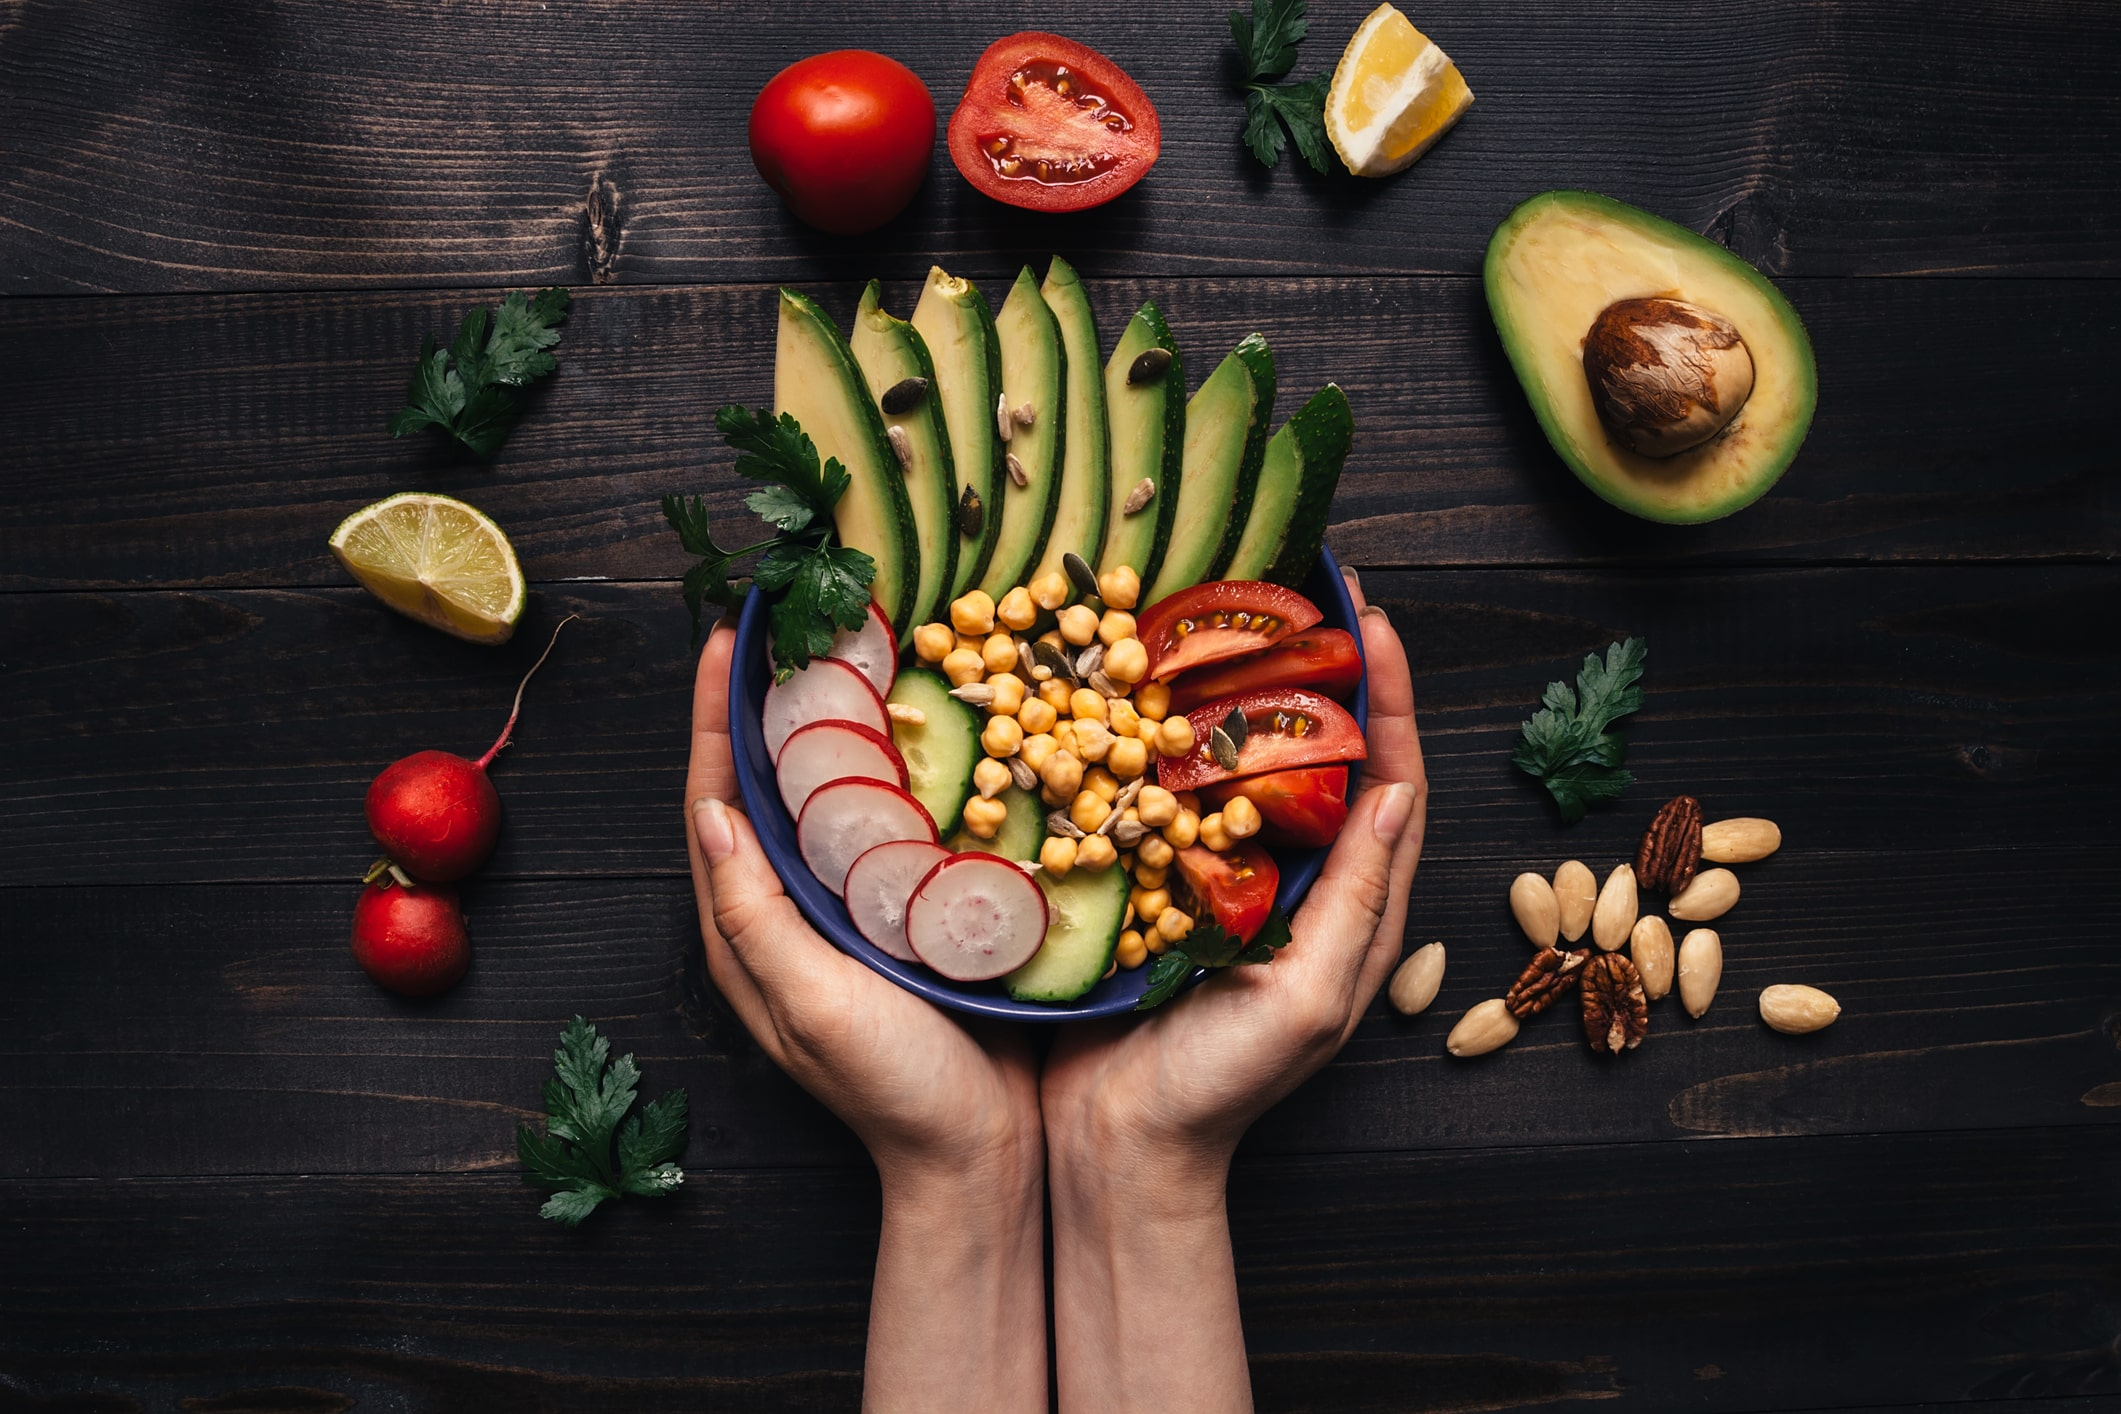 healthy-food-concept-hands-holding-healthy-salad-with-chickpea-and-vegetables-vegan-food-vegetarian-diet-91626256-min